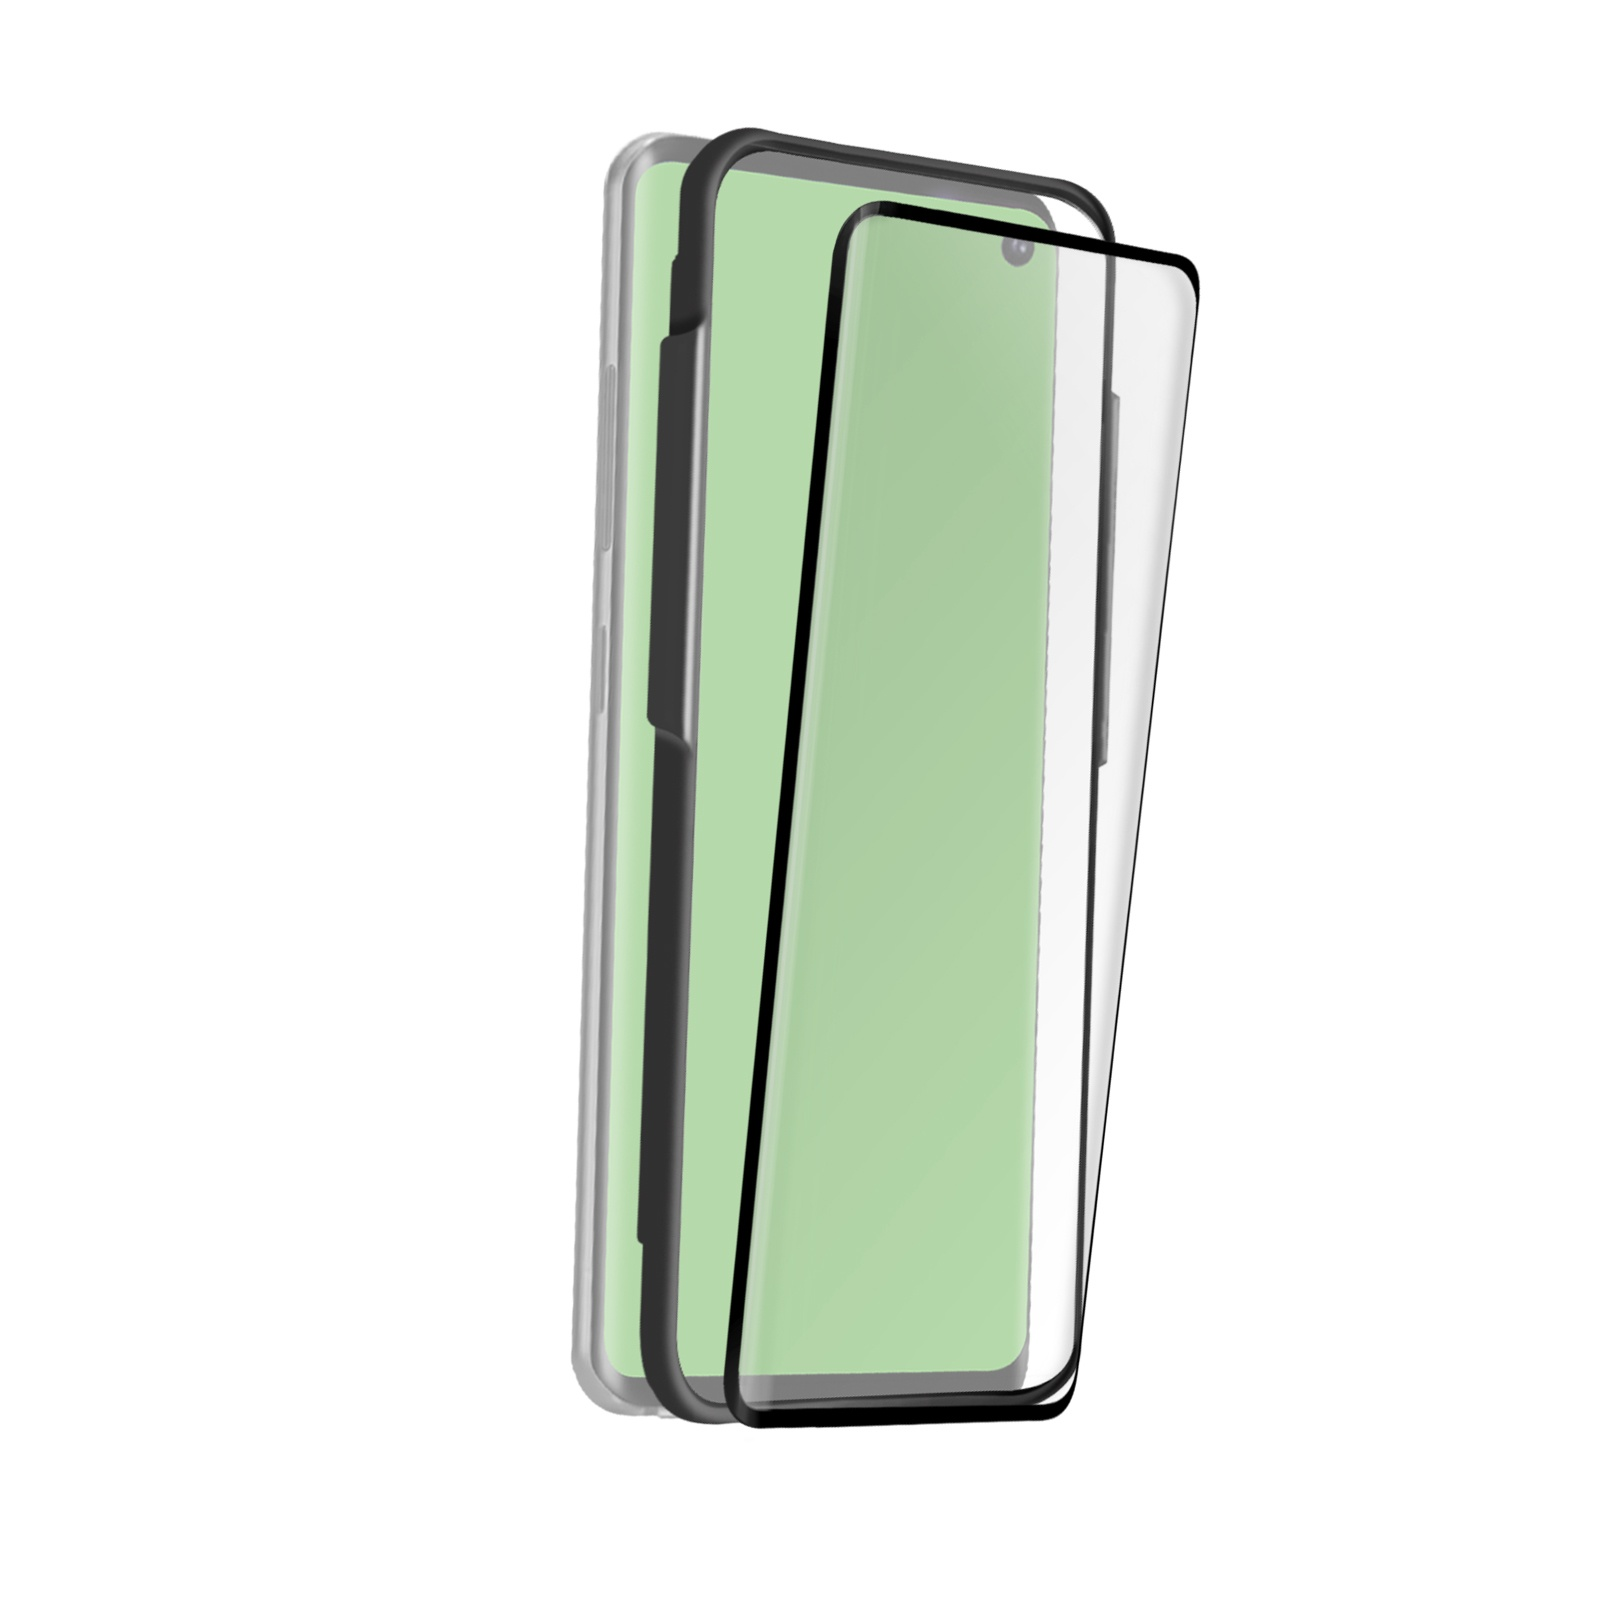 SBS 4D rounded edges screen protector for Samsung Galaxy S10e, black color